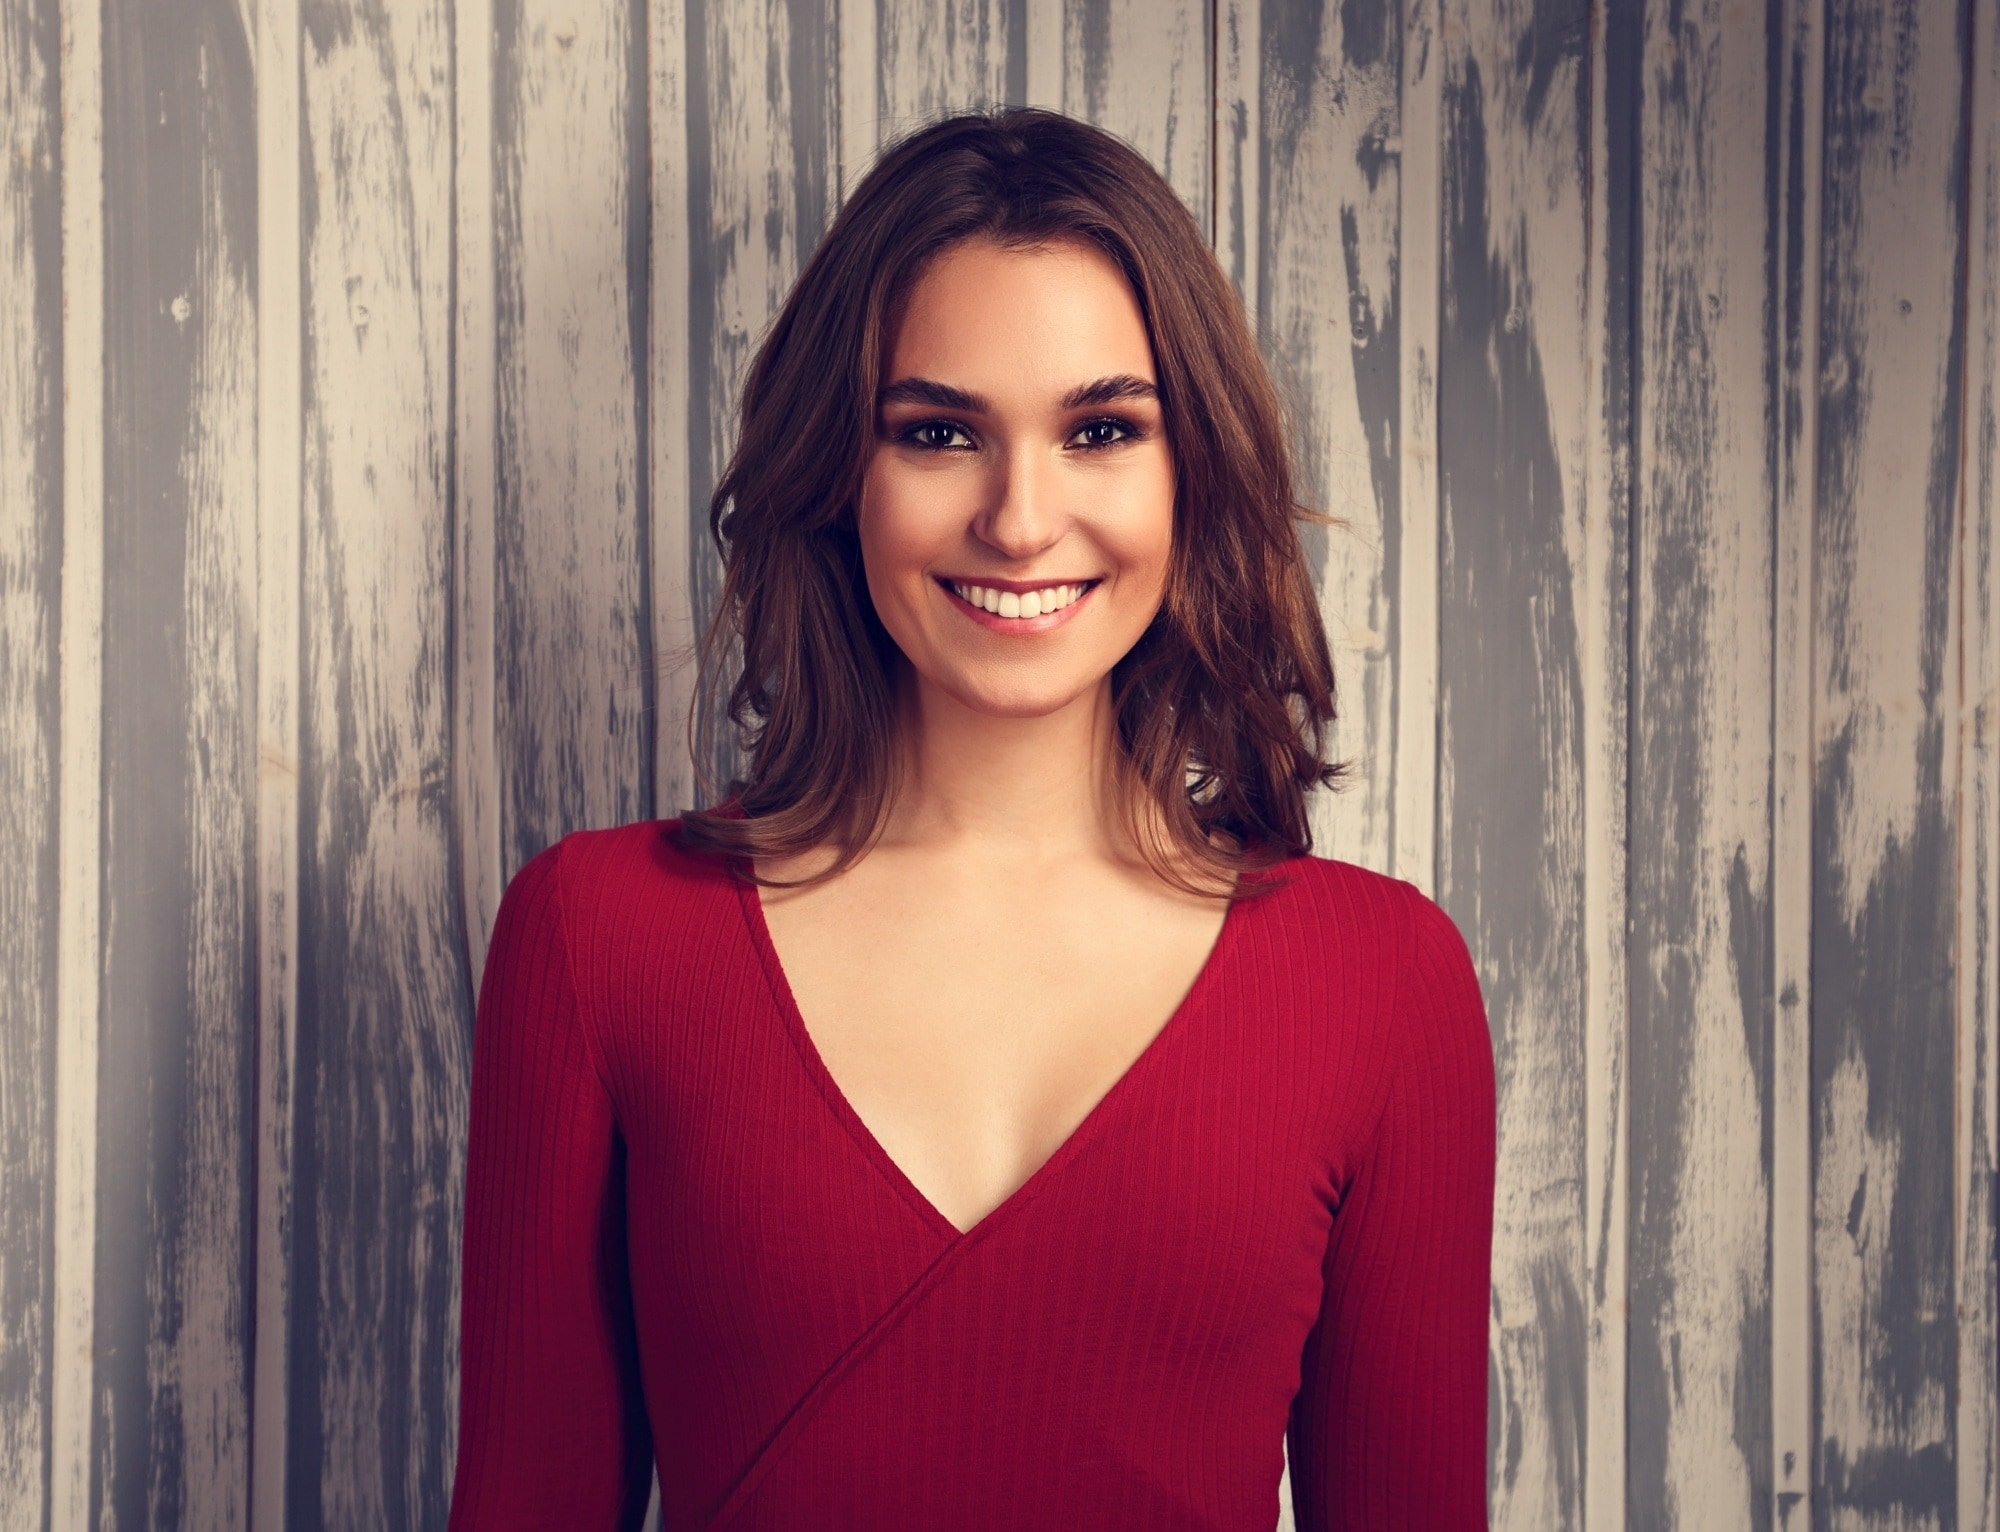 Party hairstyles for medium hair: Woman with medium-length brown hair wearing a red top against a wooden background